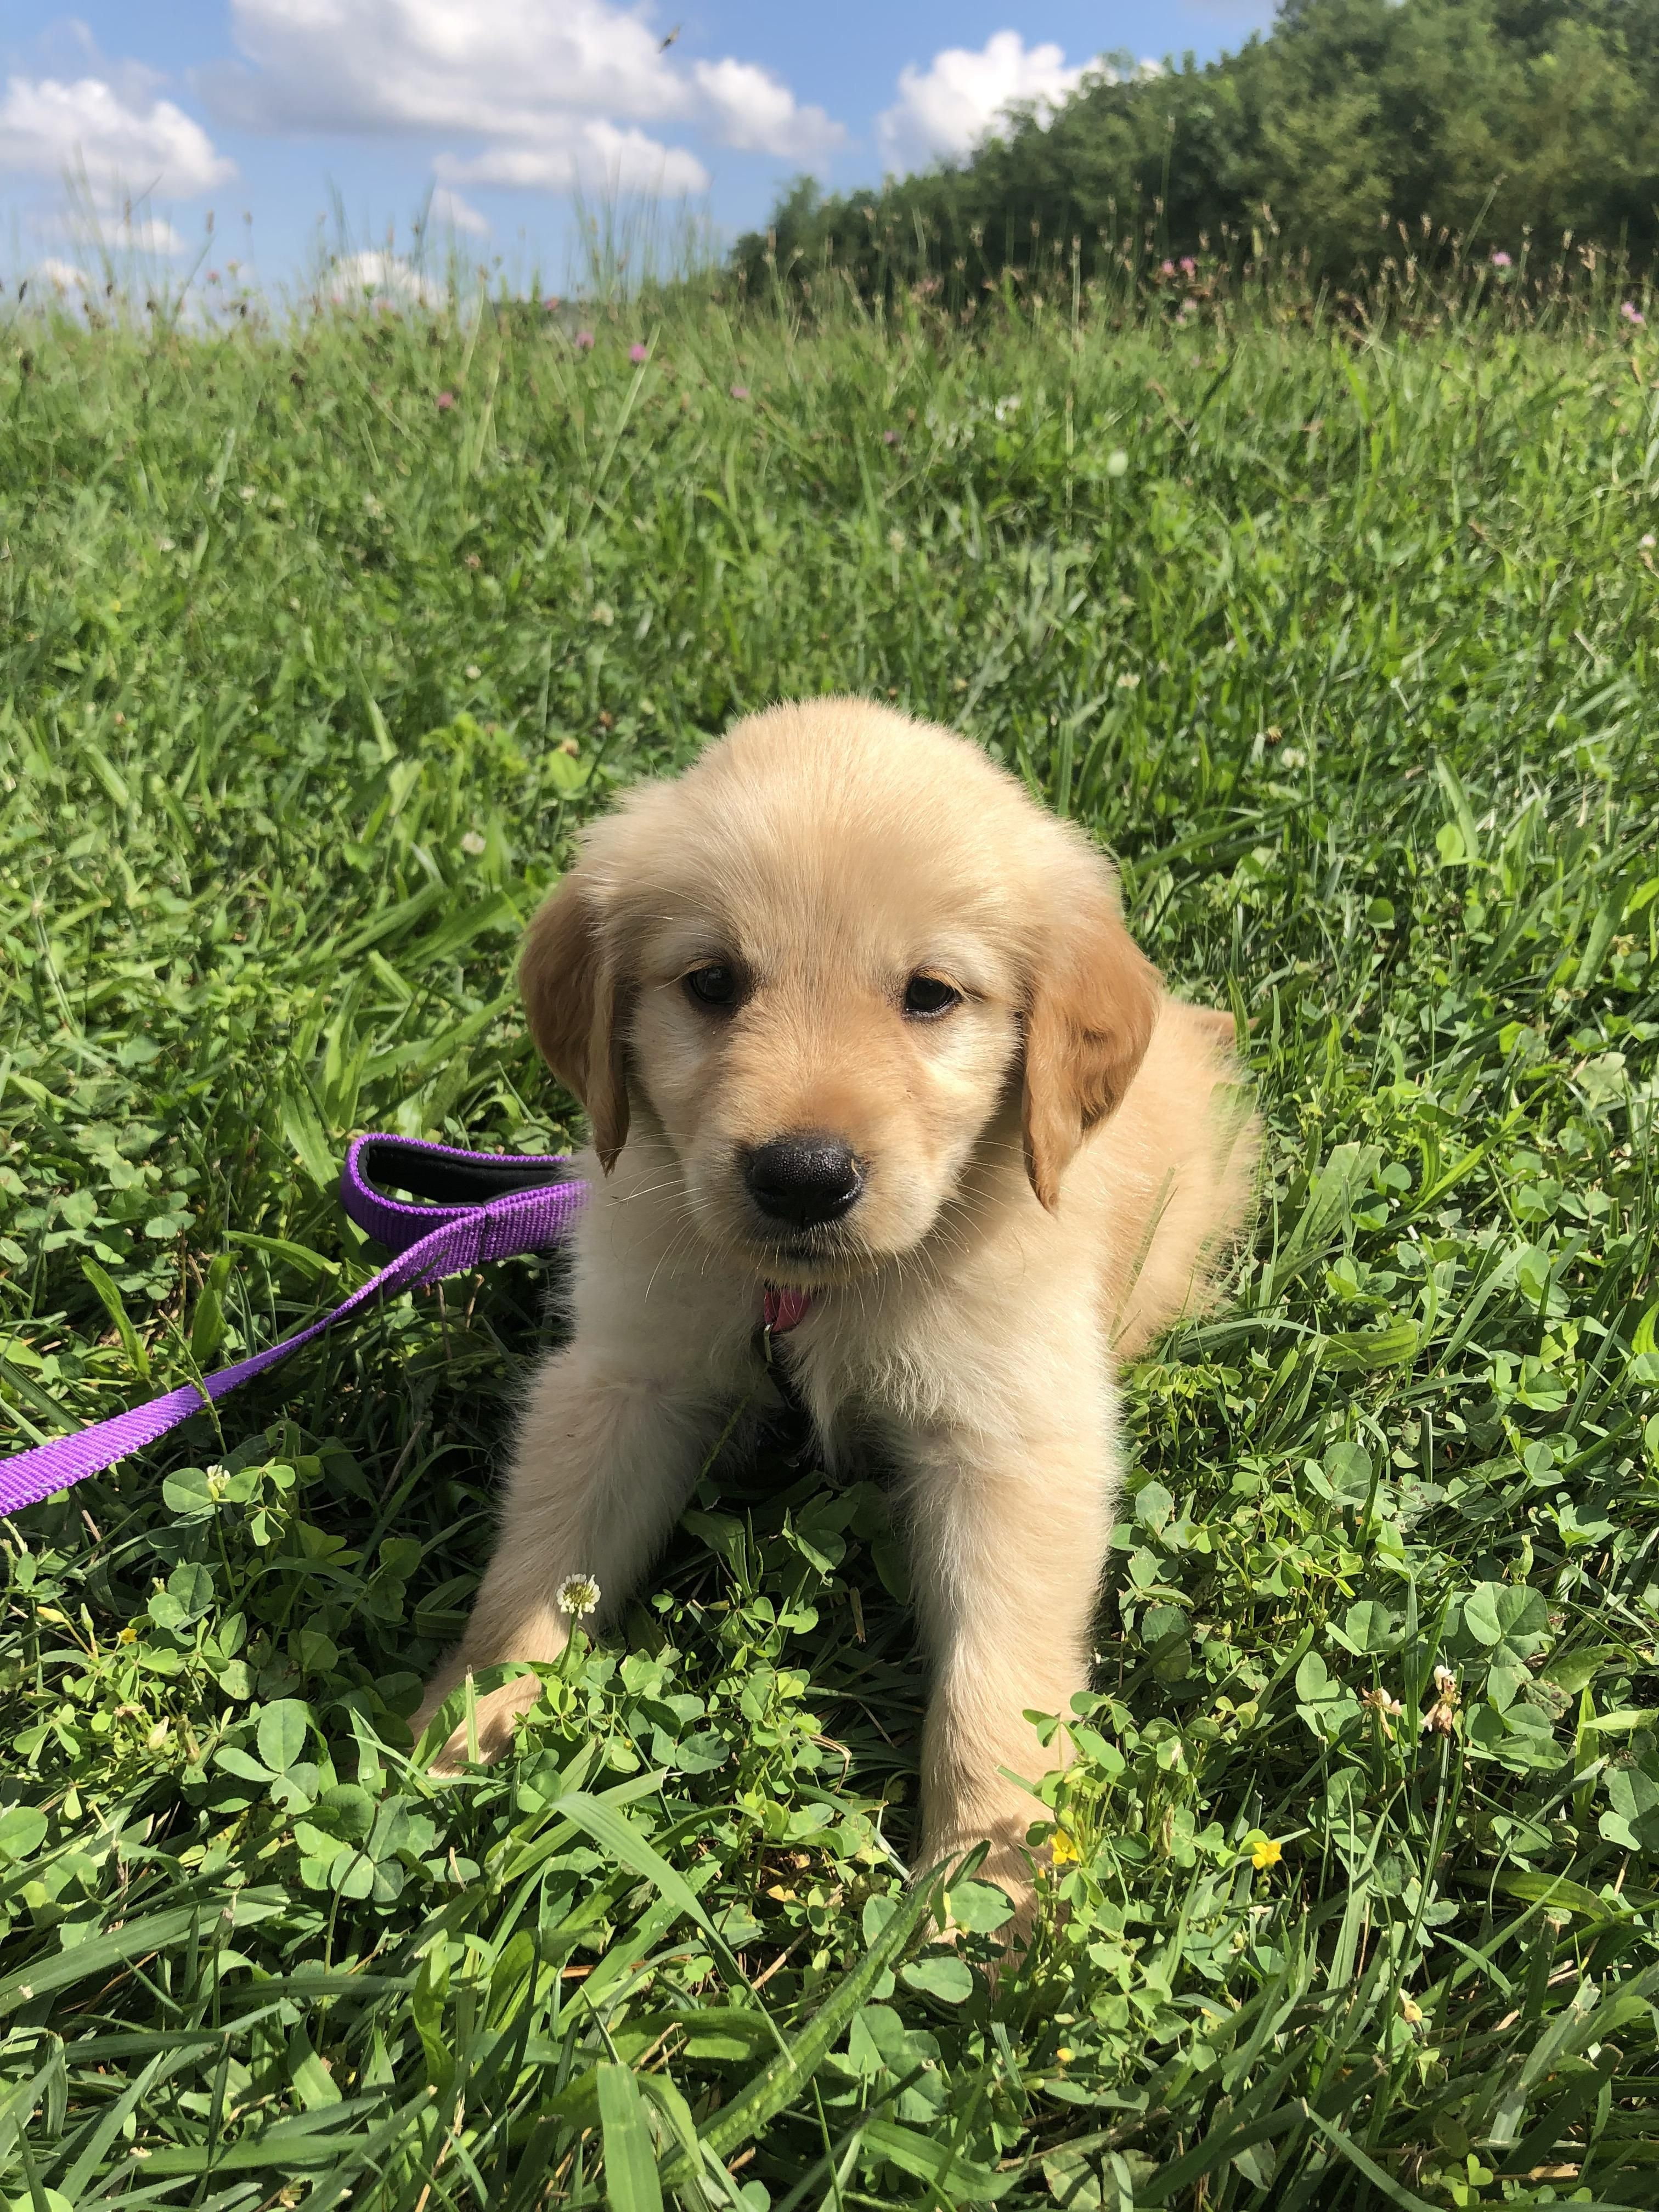 Sadie joined our family today!